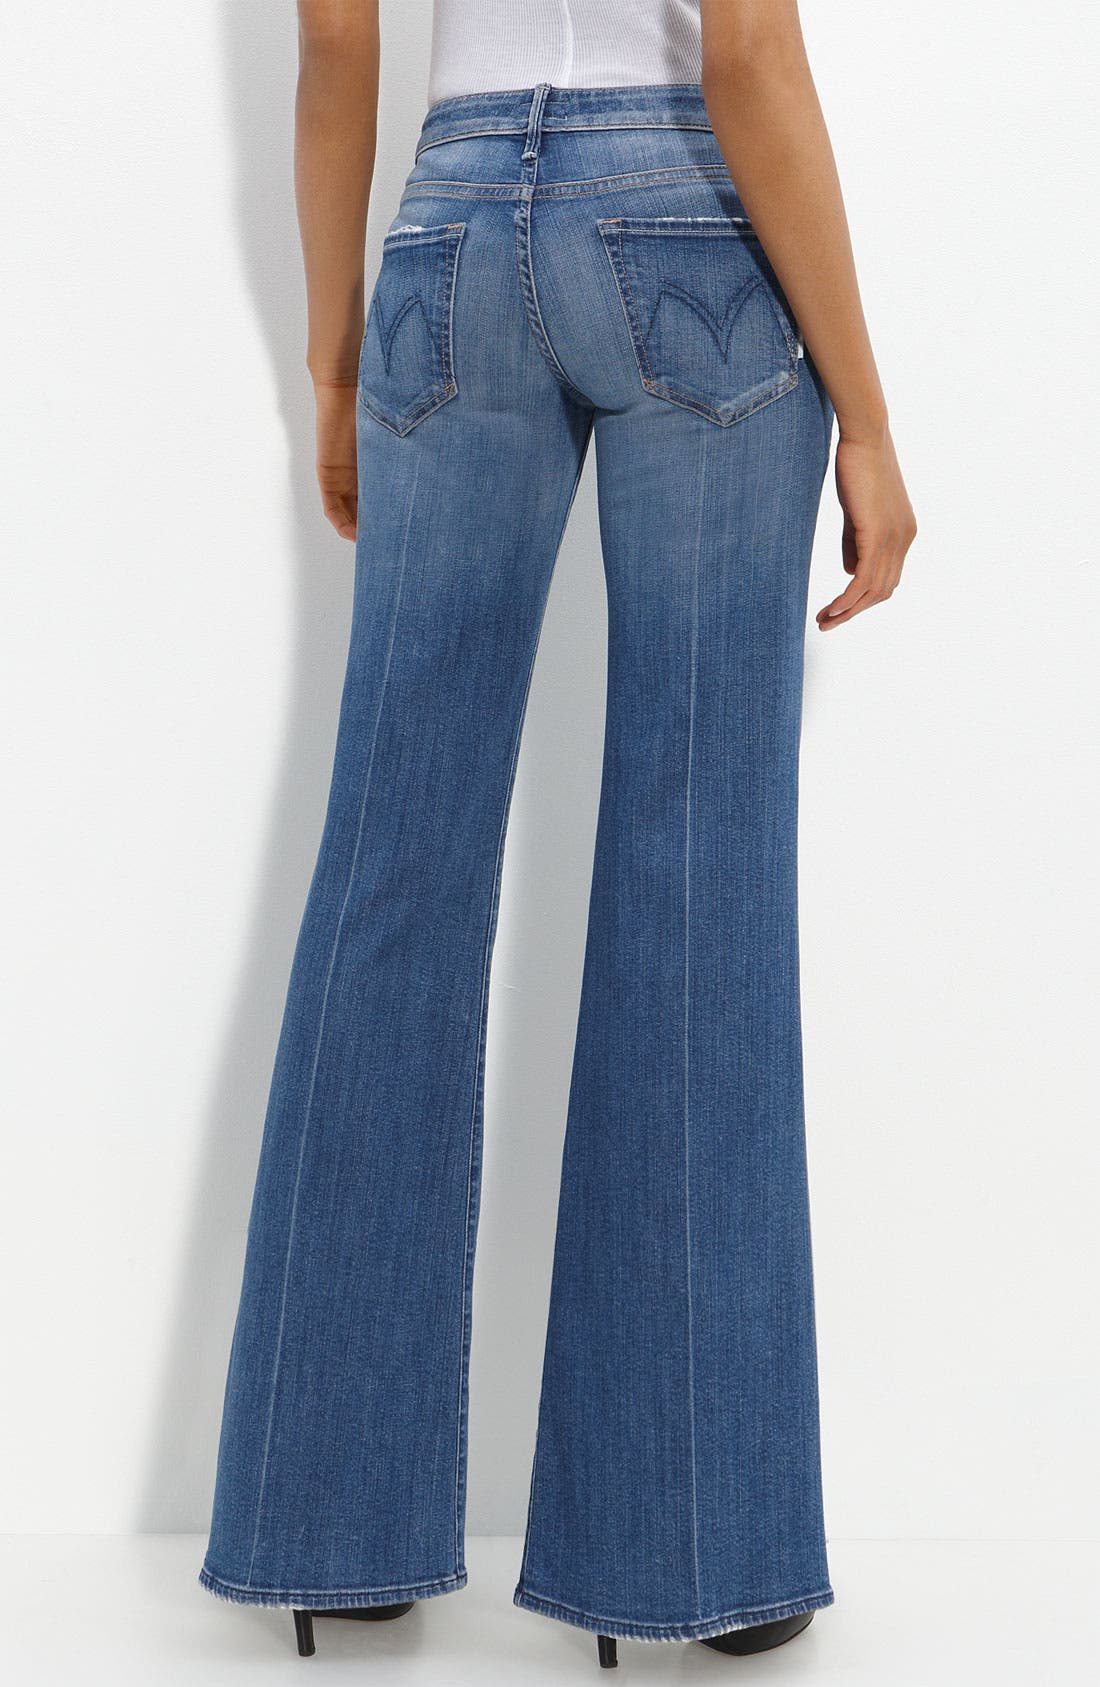 Alternate Image 1 Selected - MOTHER 'The Wilder' Flare Leg Stretch Jeans (Medium Kitty Wash)